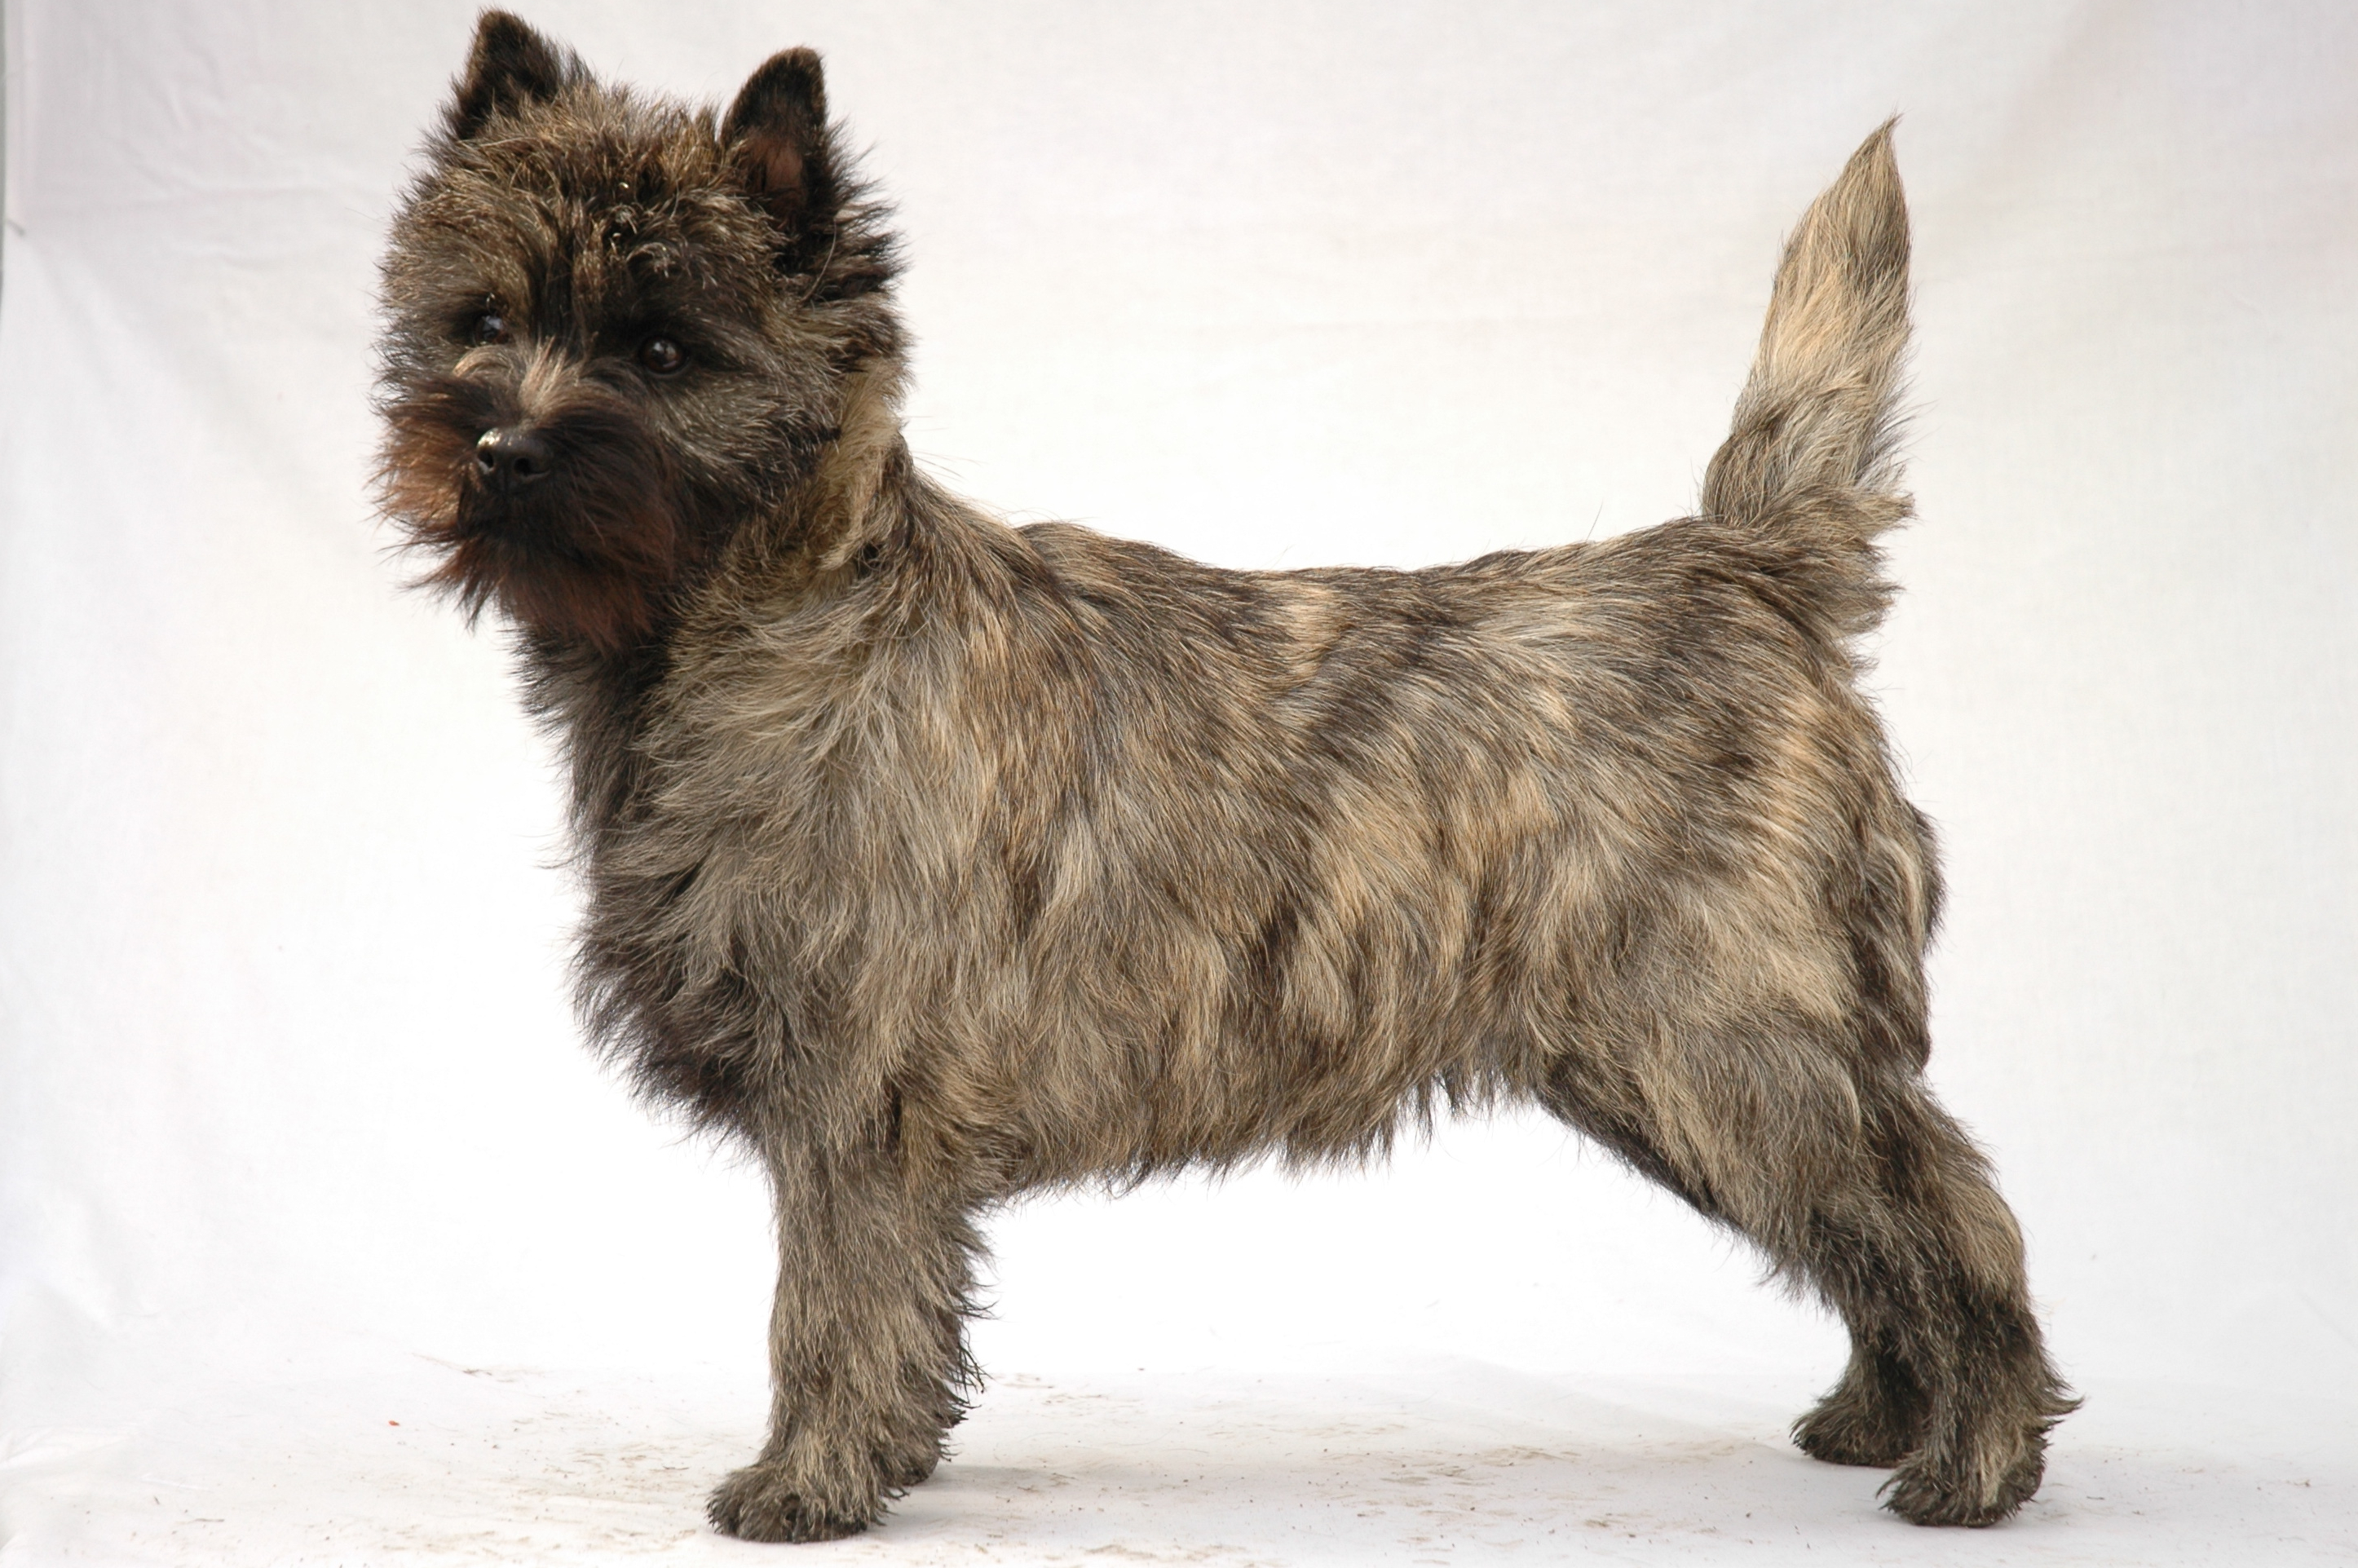 Cairn Terrier - Wikipedia, the free encyclopedia